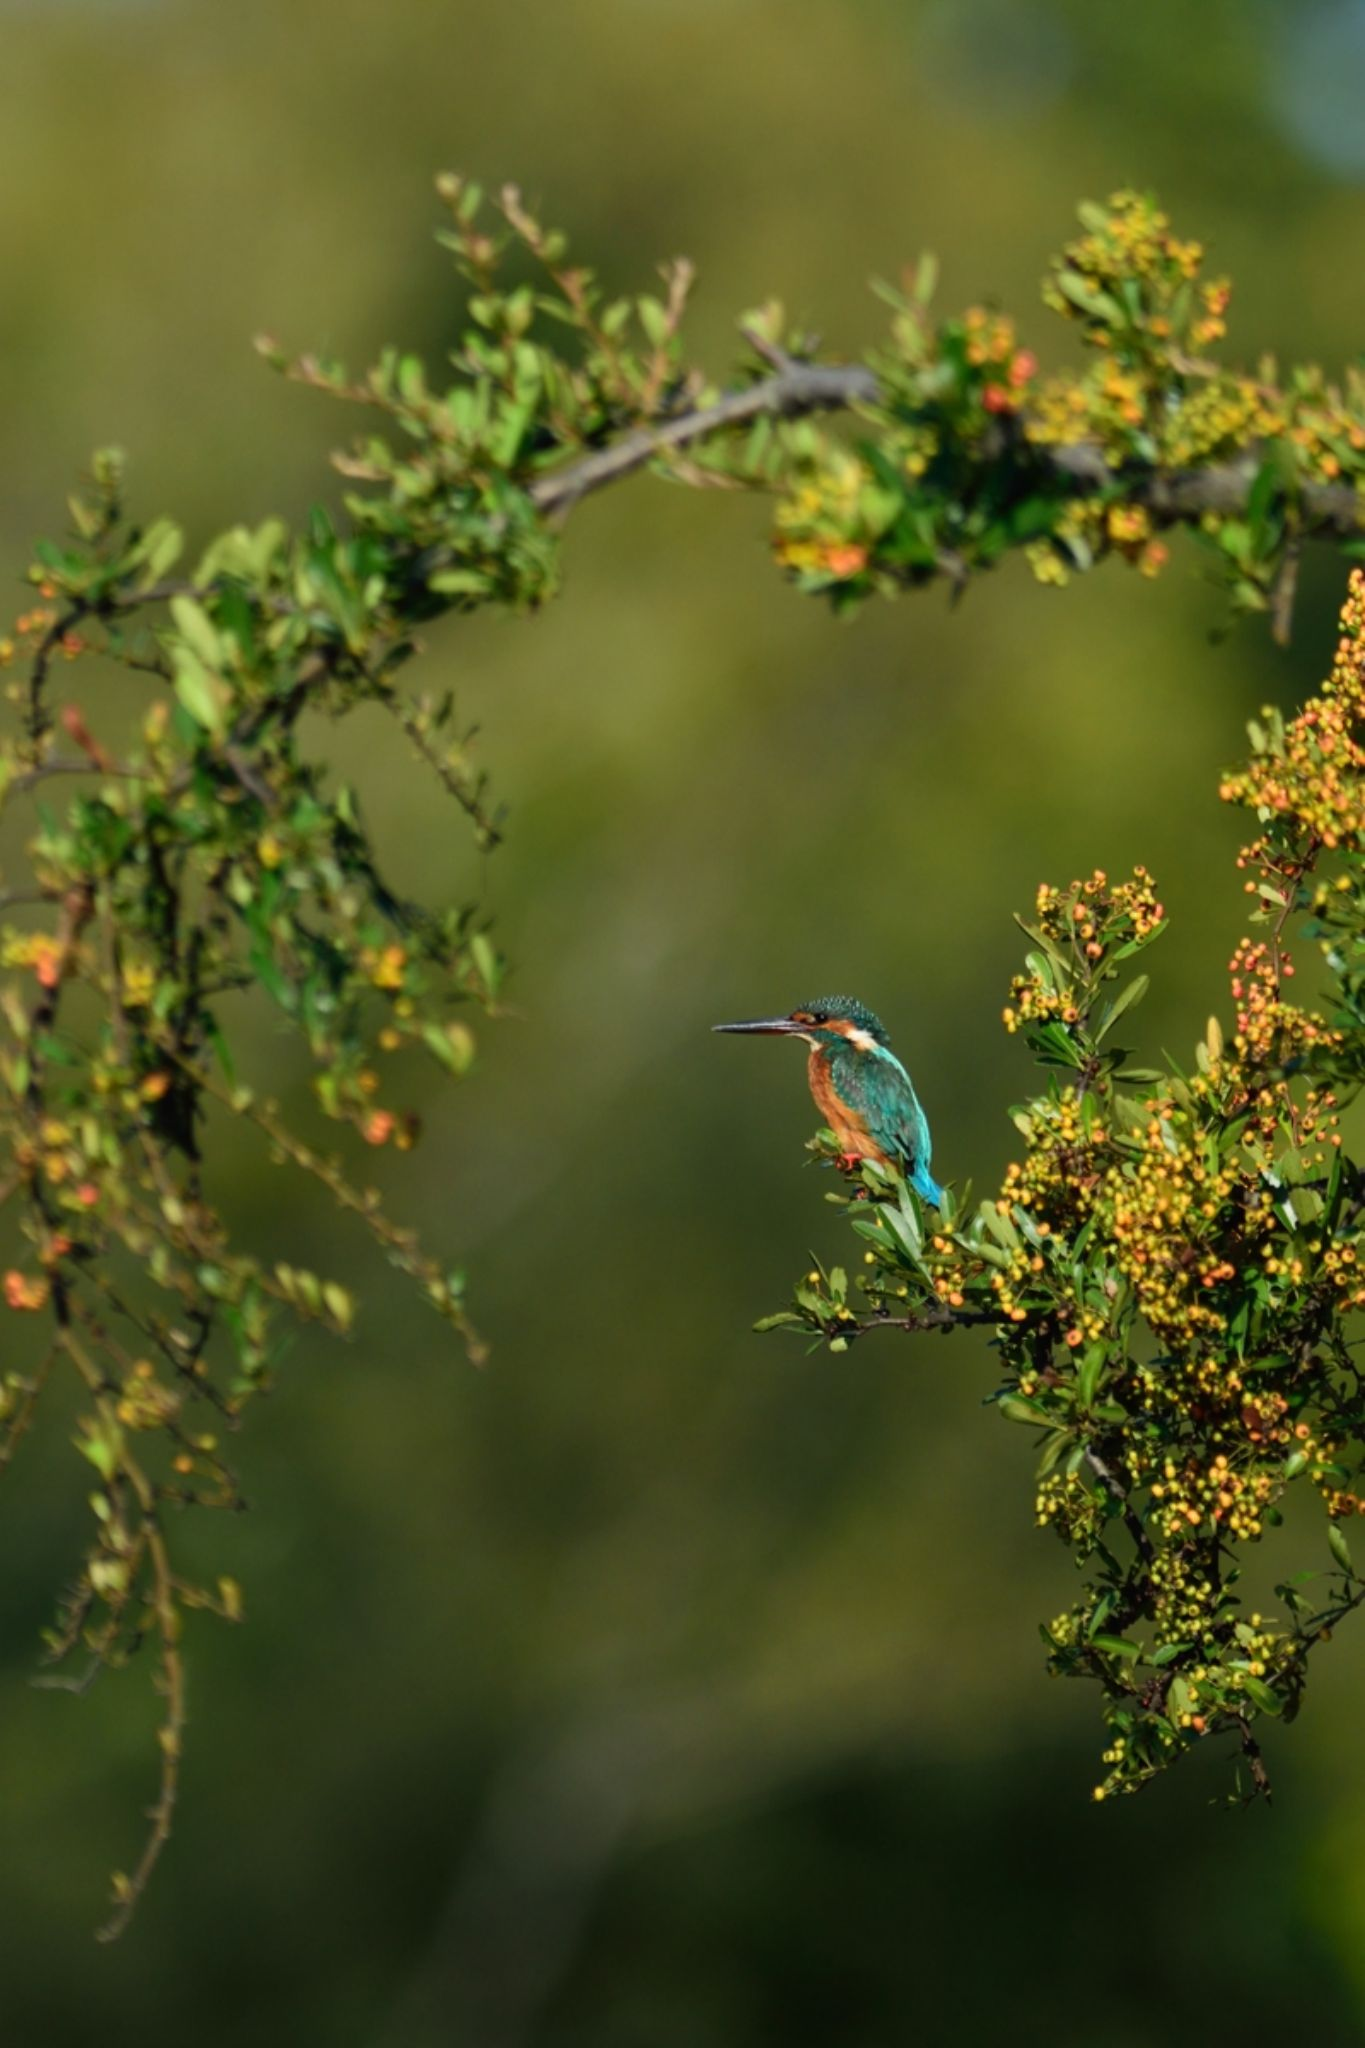 Slightly Autumn Tint , Kingfisher by Mubi.A